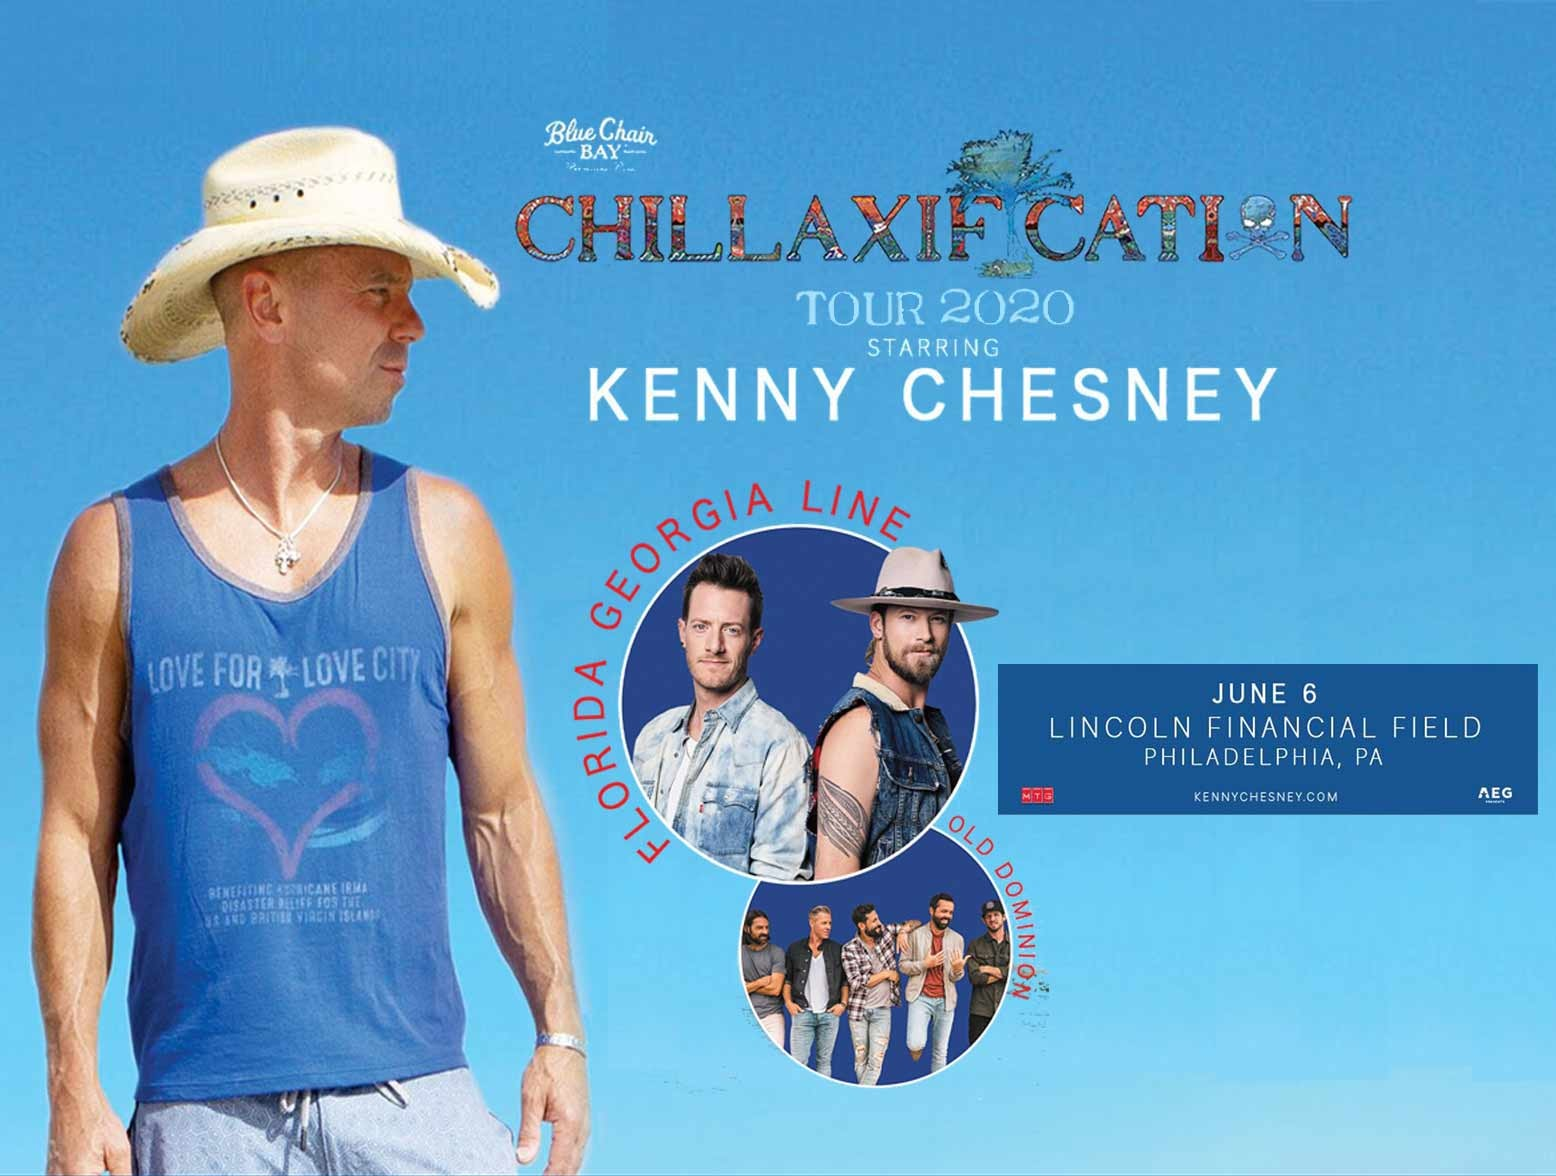 kenny chesney concerts 2020